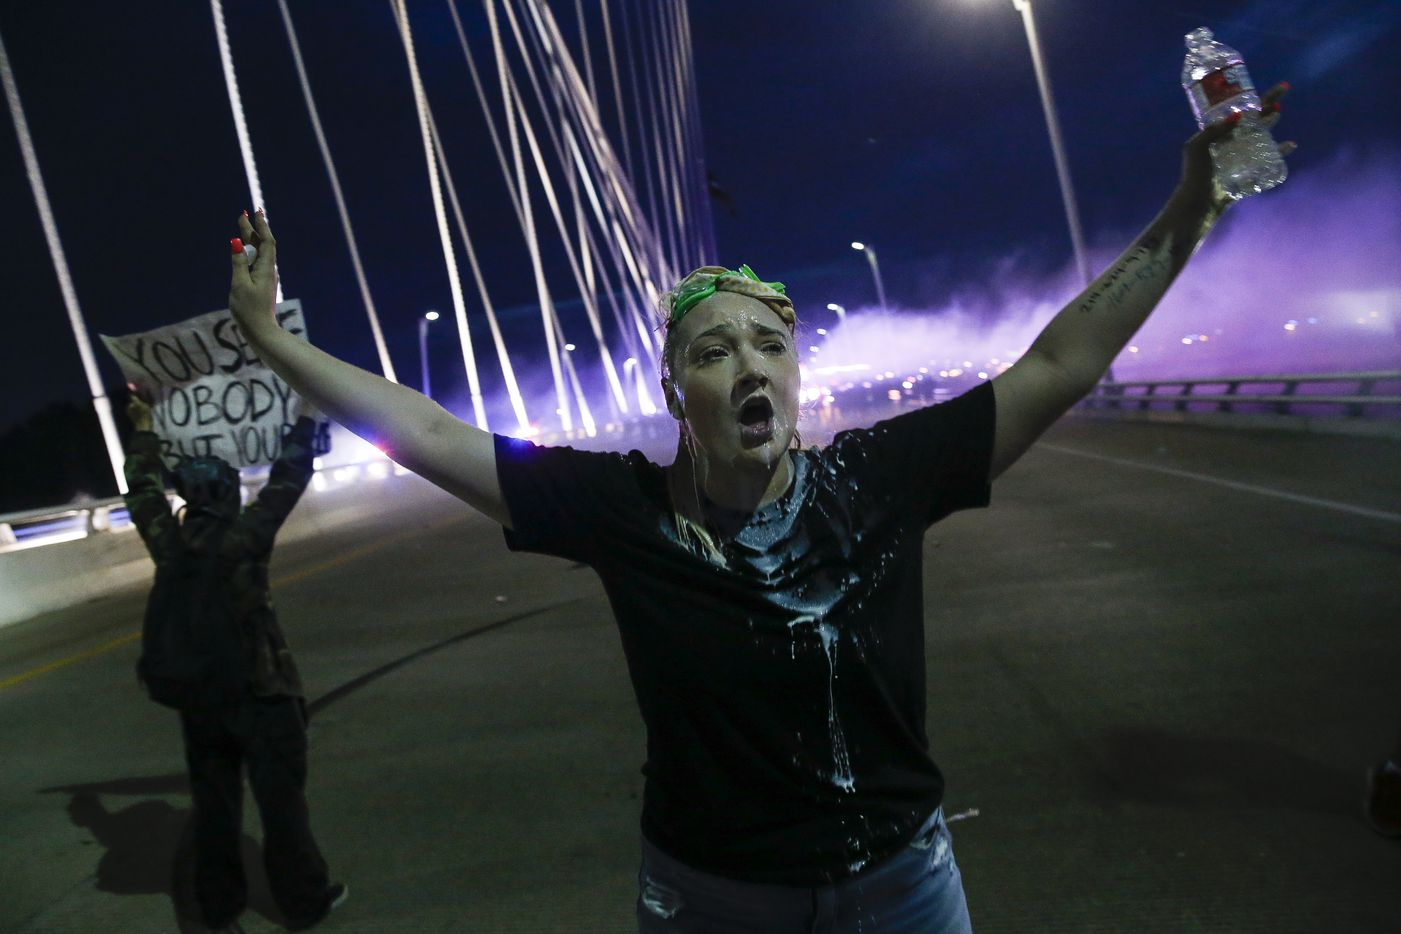 Police deploy smoke bombs and tear gas as they surround protesters who marched onto the Margaret Hunt Hill Bridge while demonstrating against police brutality on Monday, June 1, 2020, in Dallas.The hundreds of protesters were surrounded and detained by police on the bridge and transported to the Dallas County Jail where they were later released.